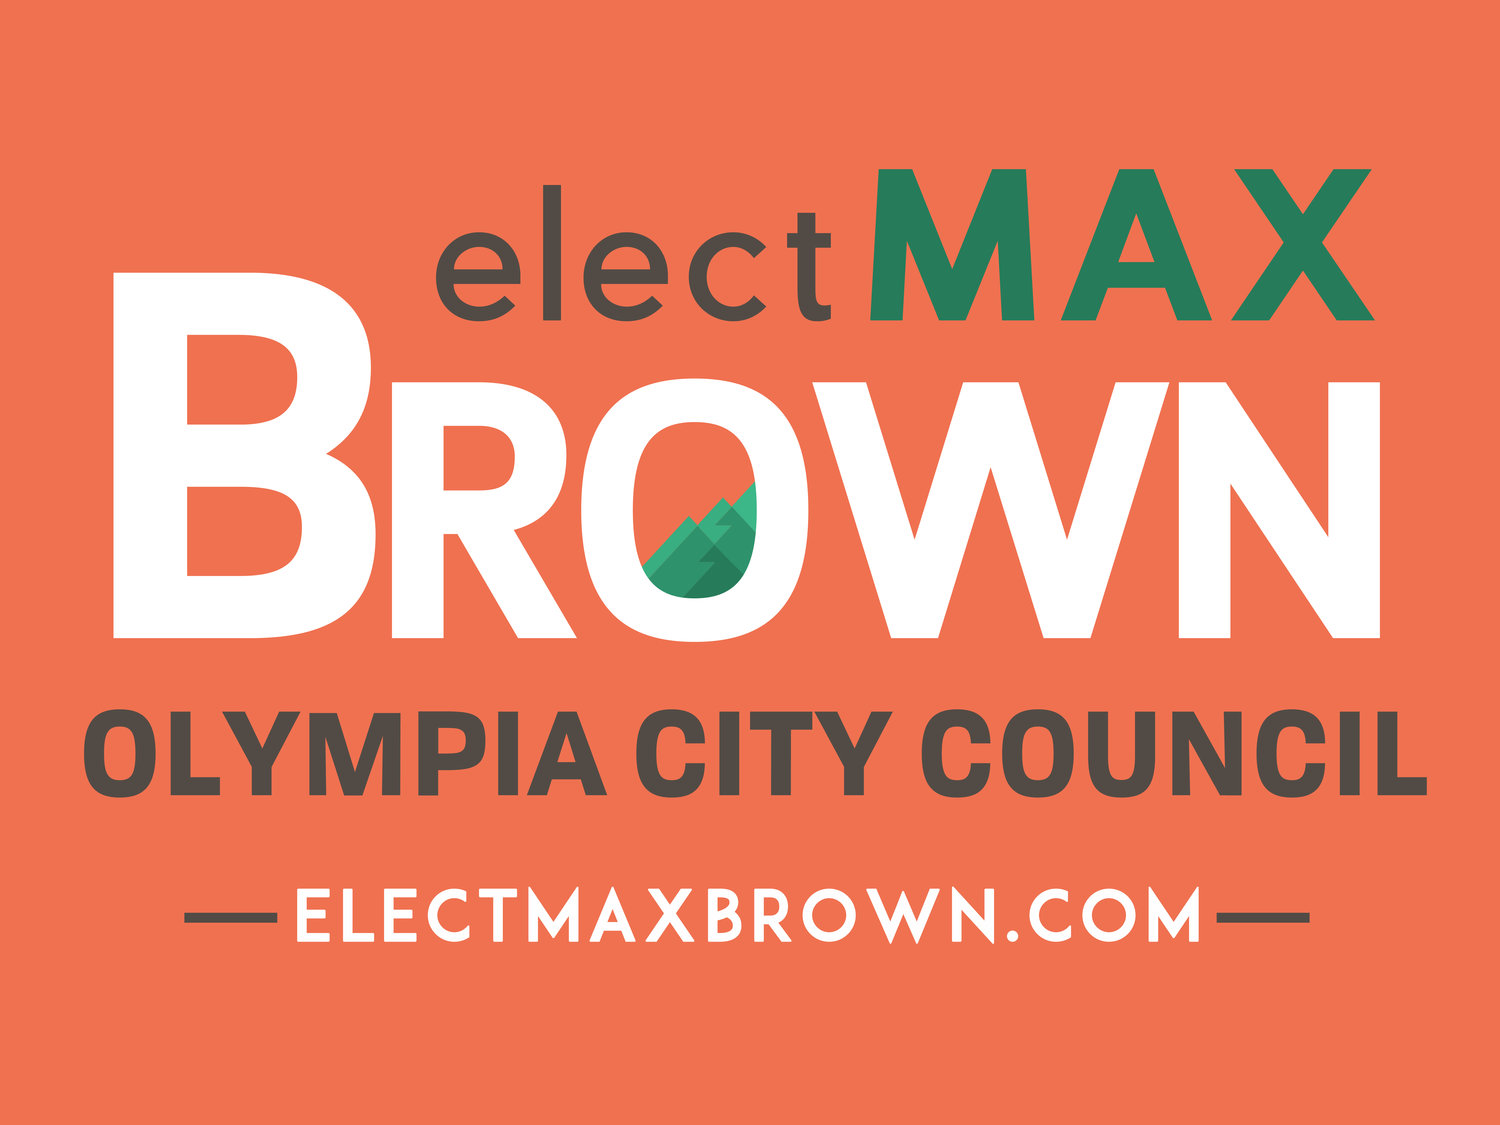 Max Brown for Olympia City Council